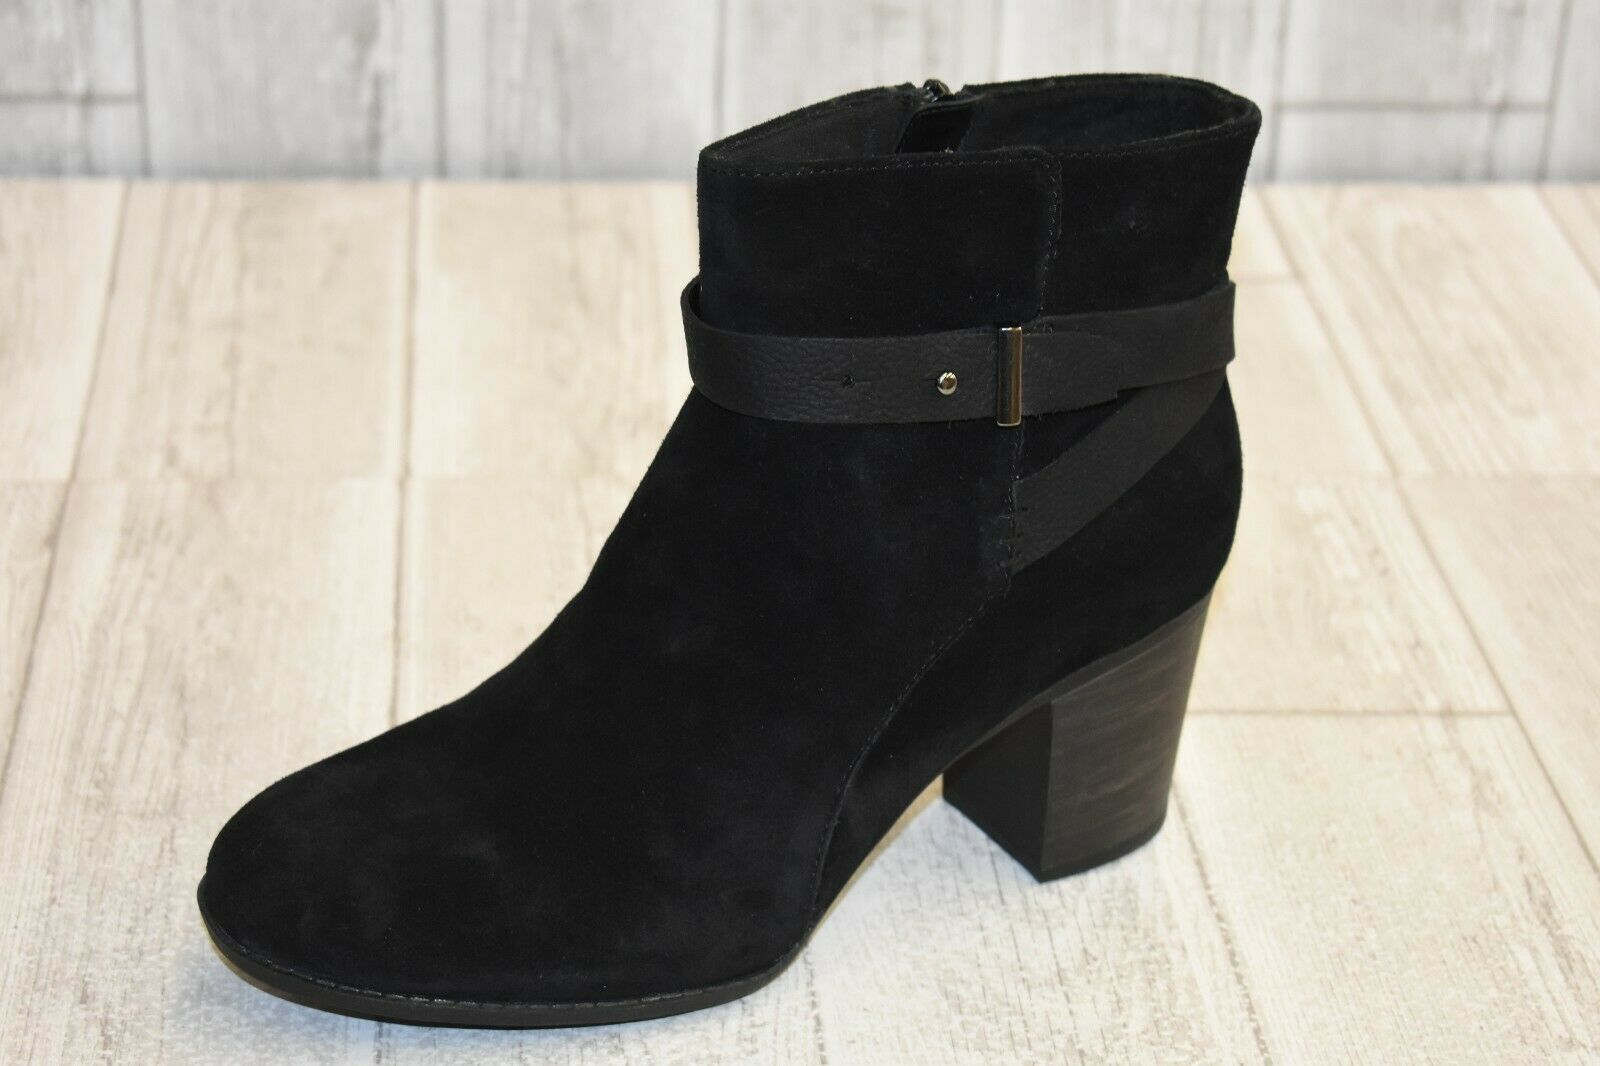 Clarks Enfield Ankle Boots - Women's Size 11 M - Black NEW